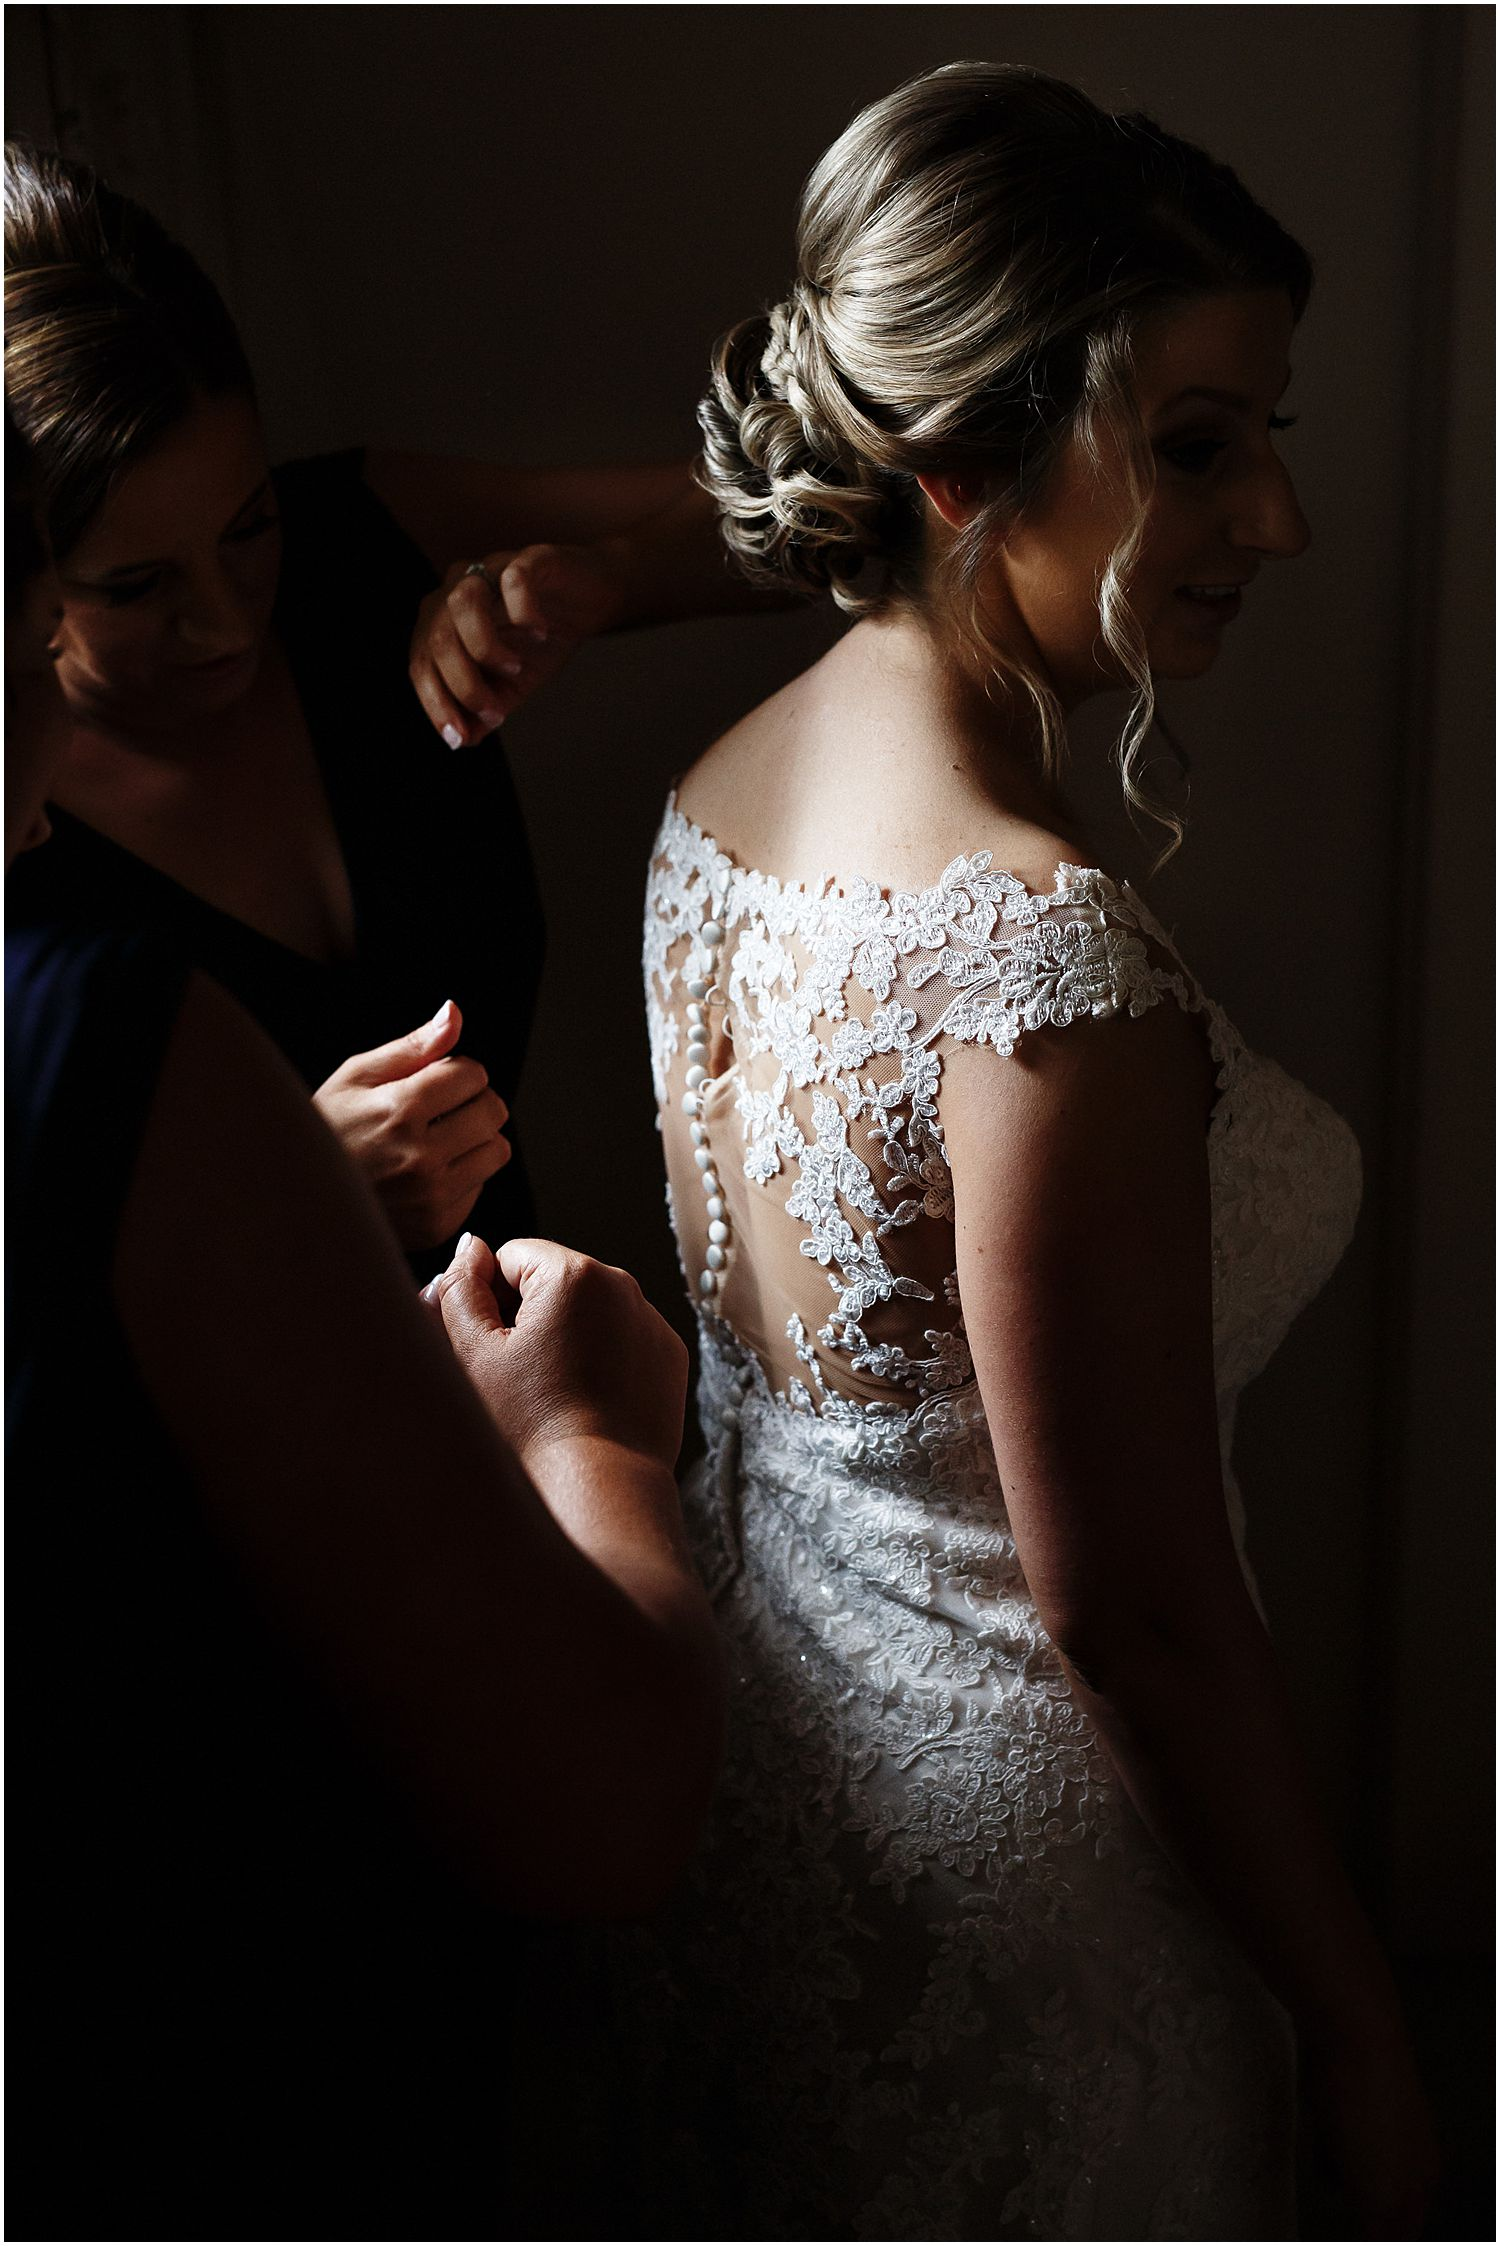 005 relaxed wedding photography melbourne.jpg